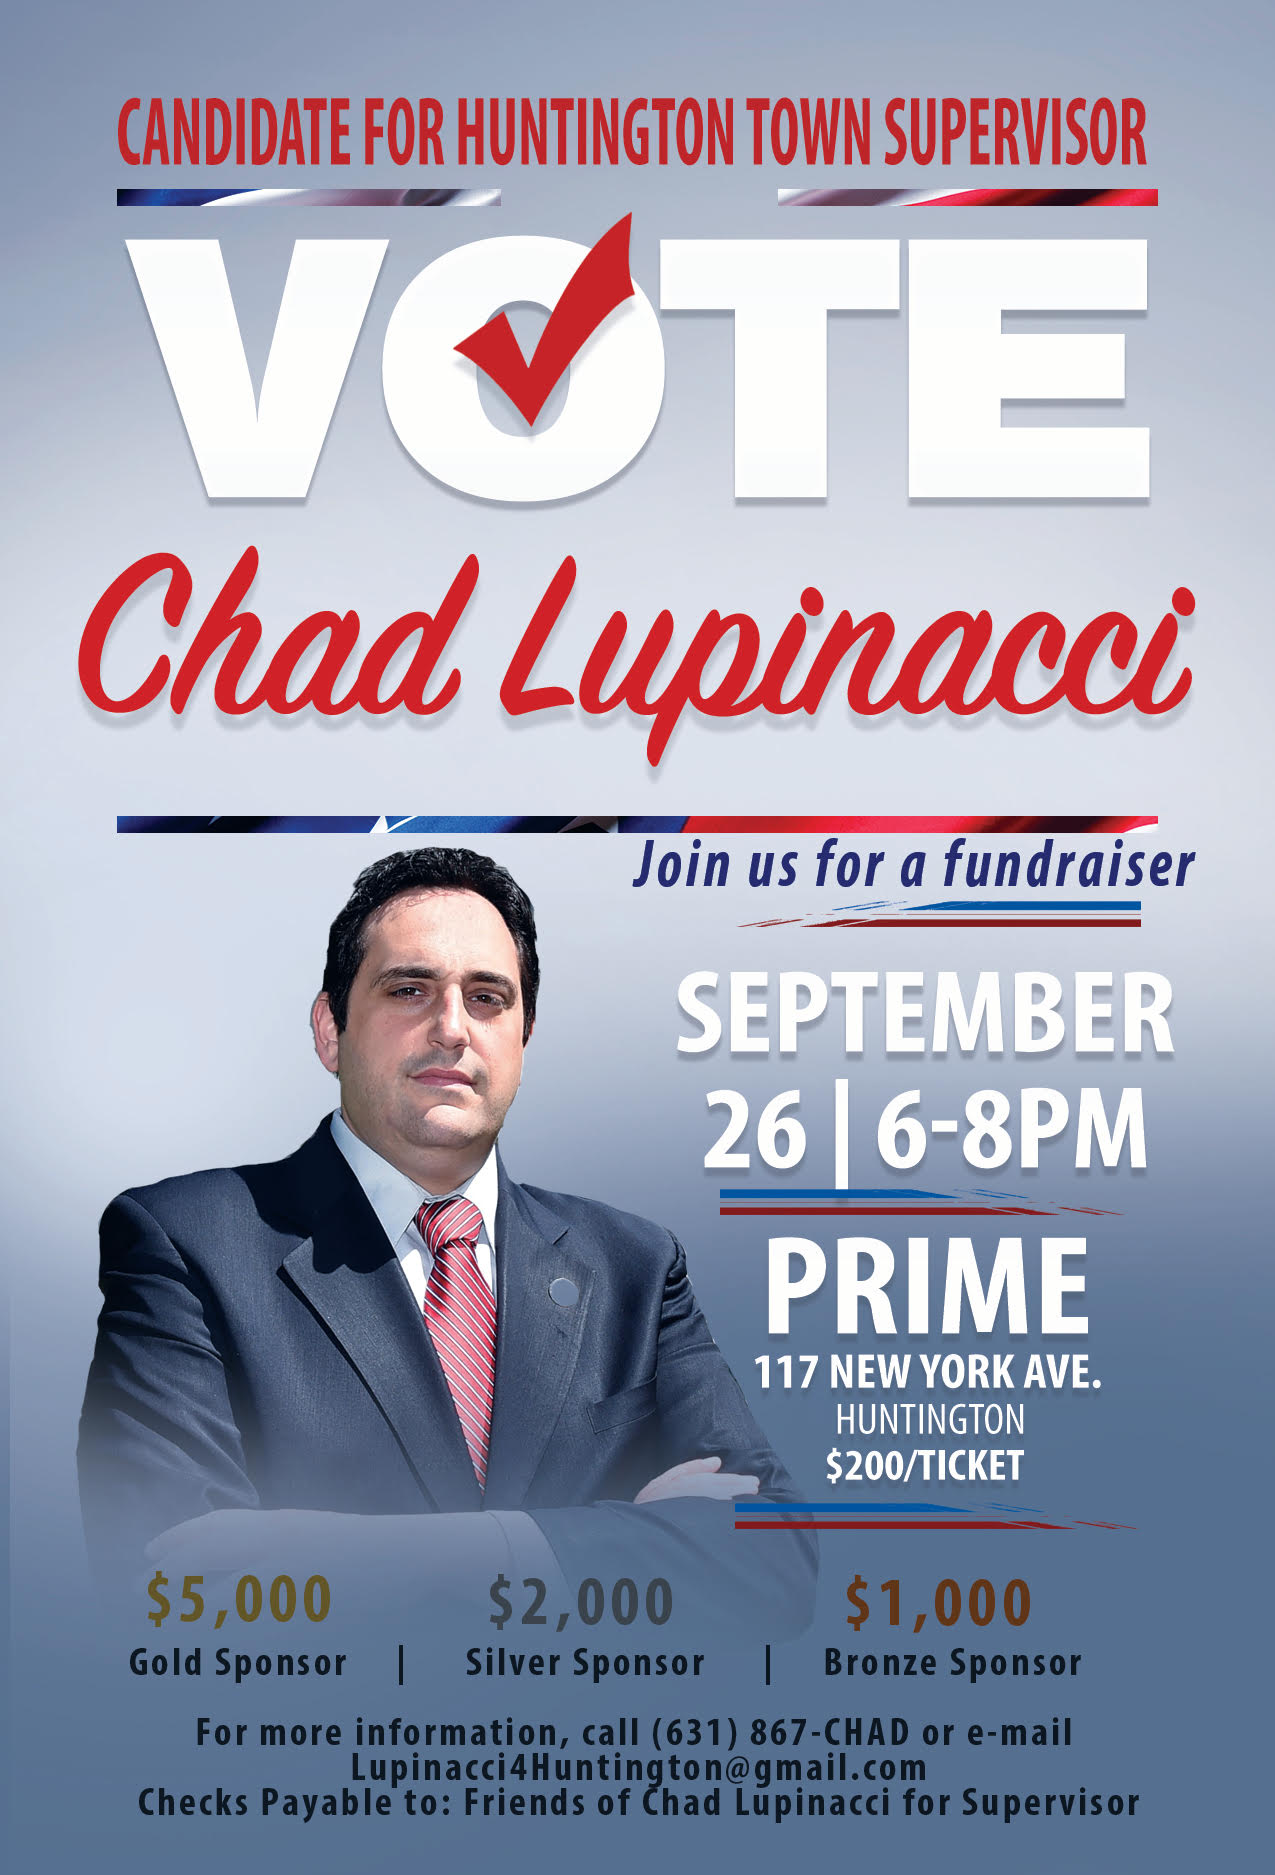 chad_lupinacci_prime_fundraiser.png